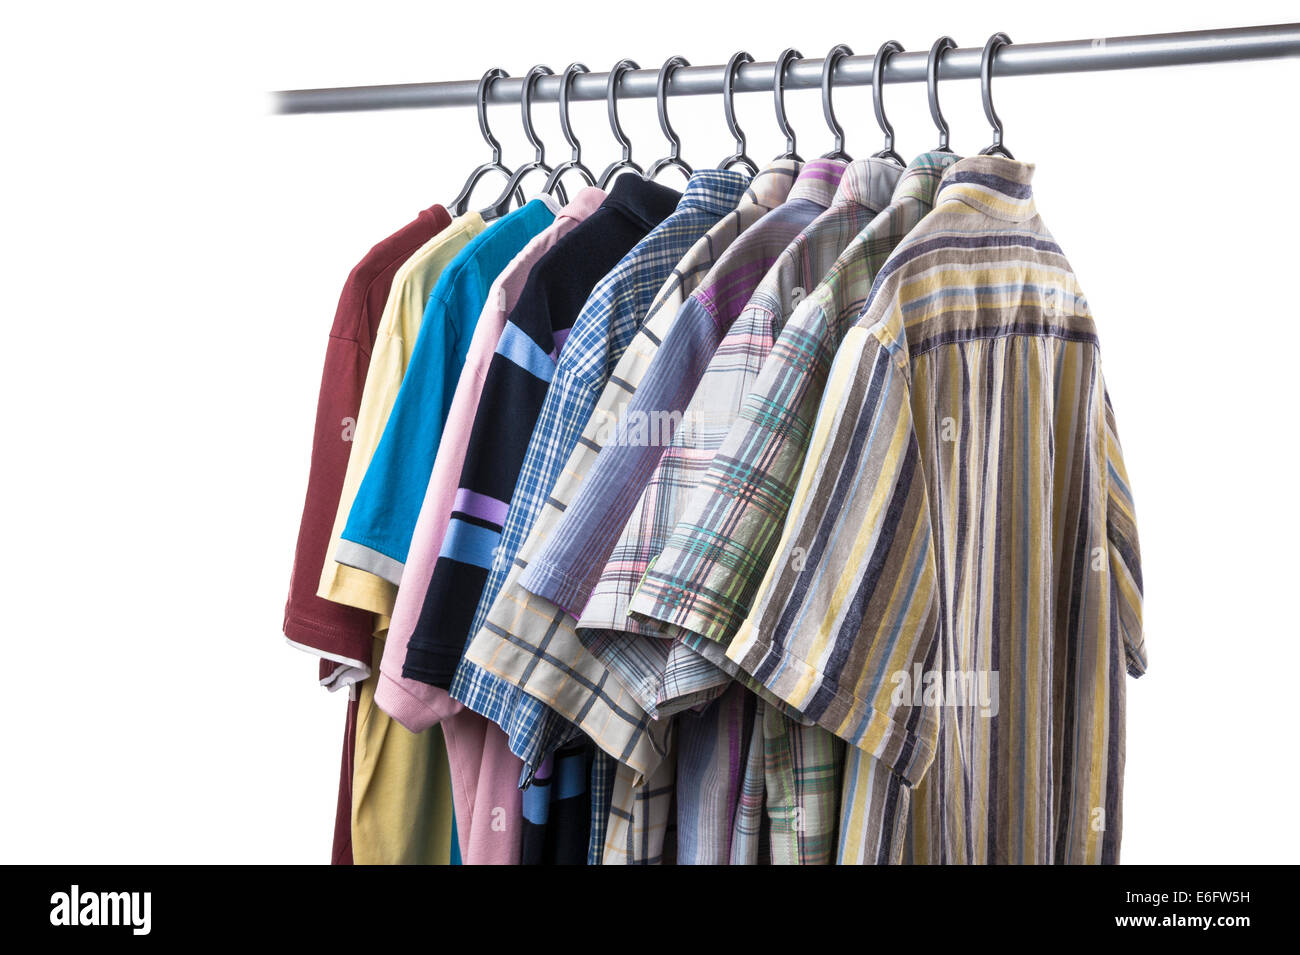 Collection of casual,short sleeved shirts , polo and tee shirts. - Stock Image